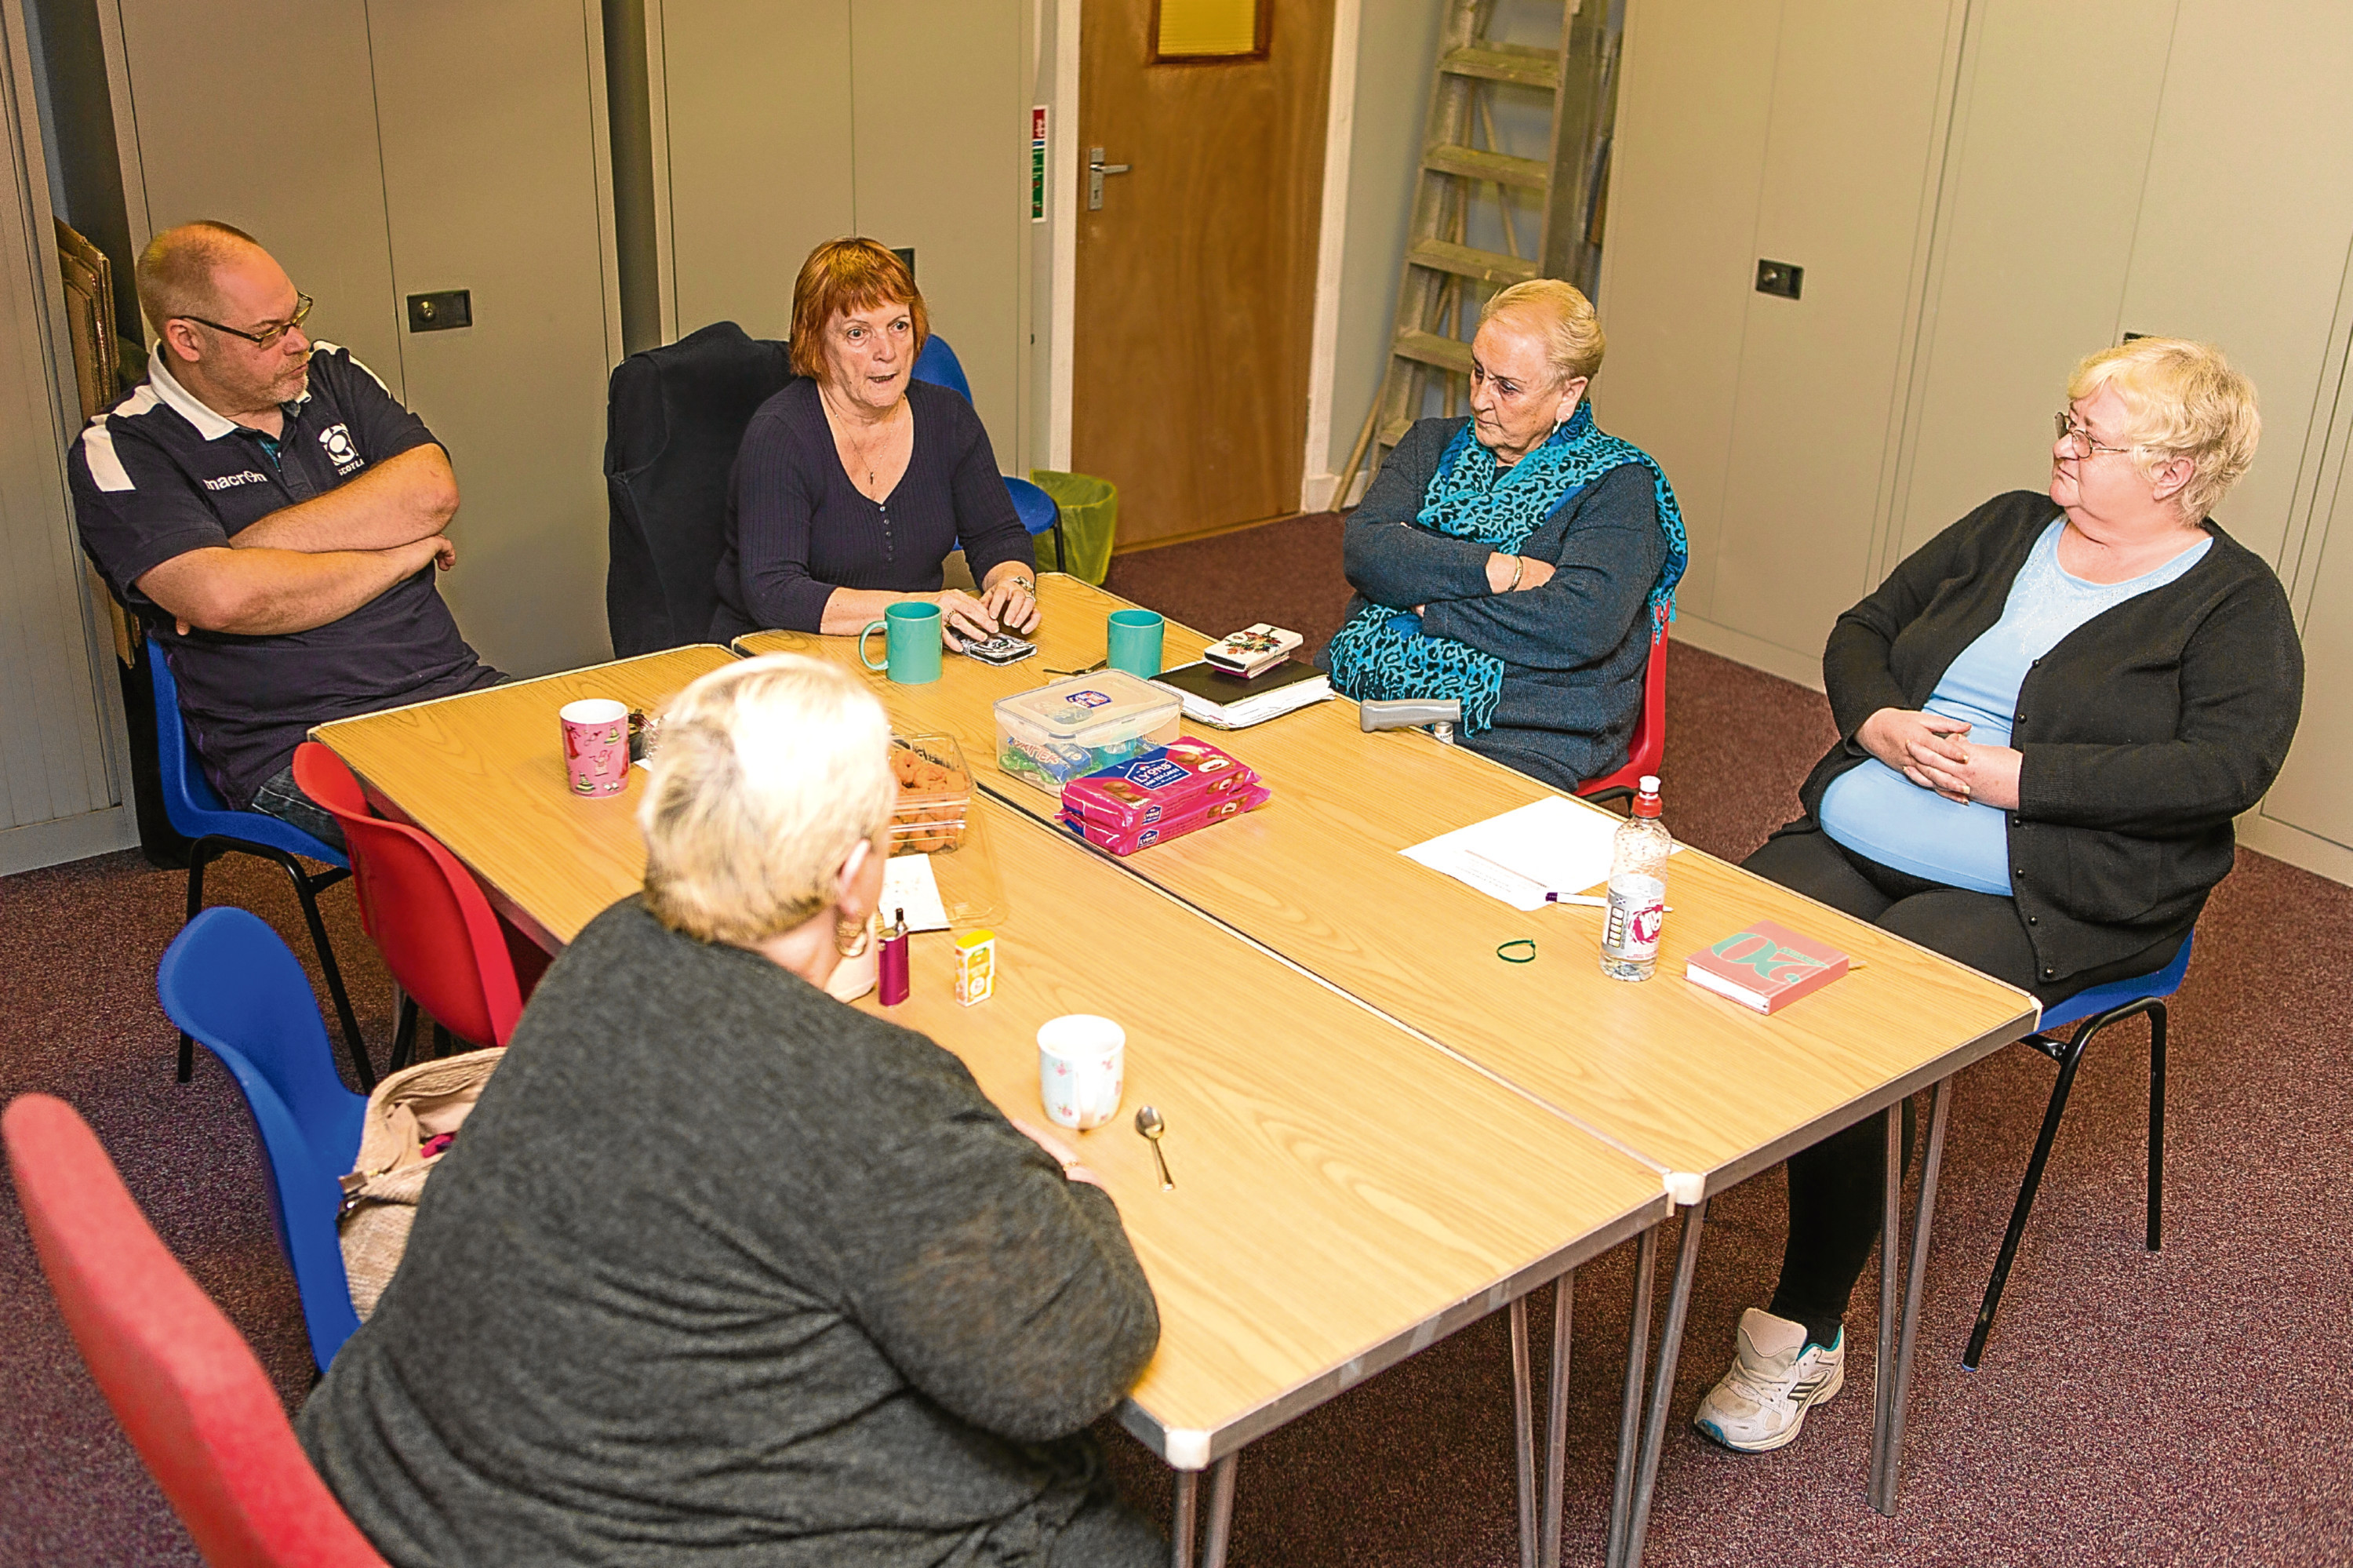 Dundee Mental Health Cairn Fowk group in a meeting.